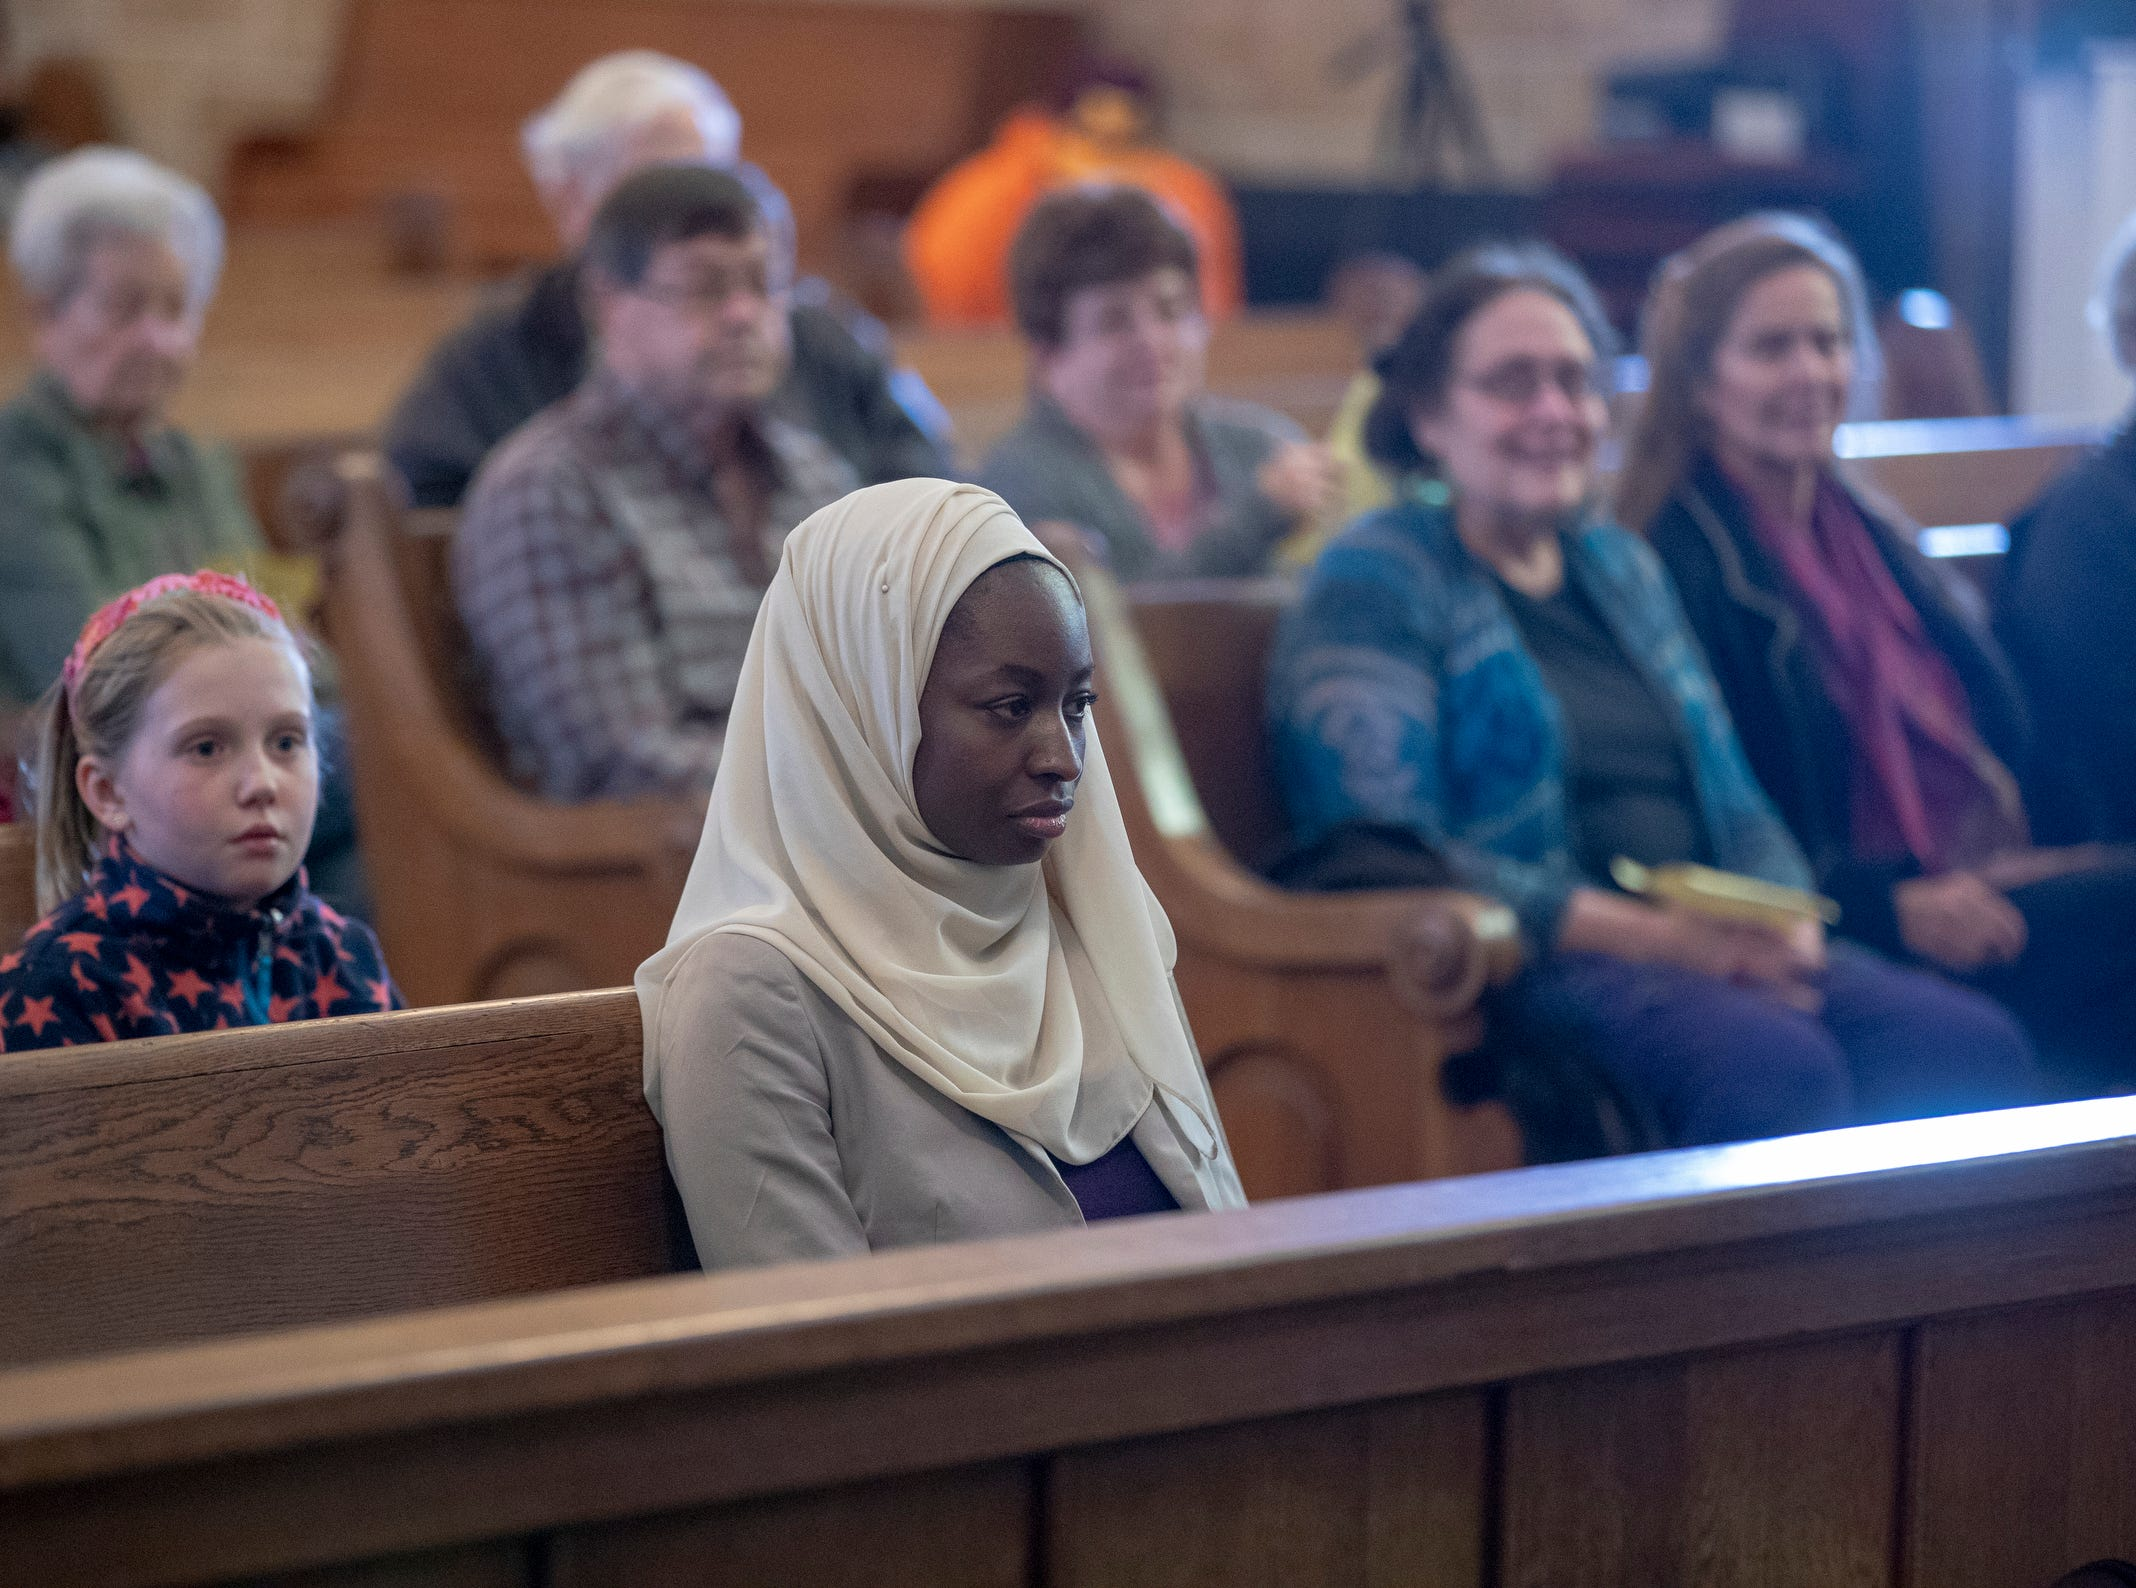 About 40 people, including Halima Al-Khattab (front), attend a Christian-Muslim prayer service at Saint Philip Neri Catholic Church, Indianapolis, Sunday, Dec. 16, 2018. The service is the second annual, and joins people from this church and Indianapolis' Masjid Al-Fajr.